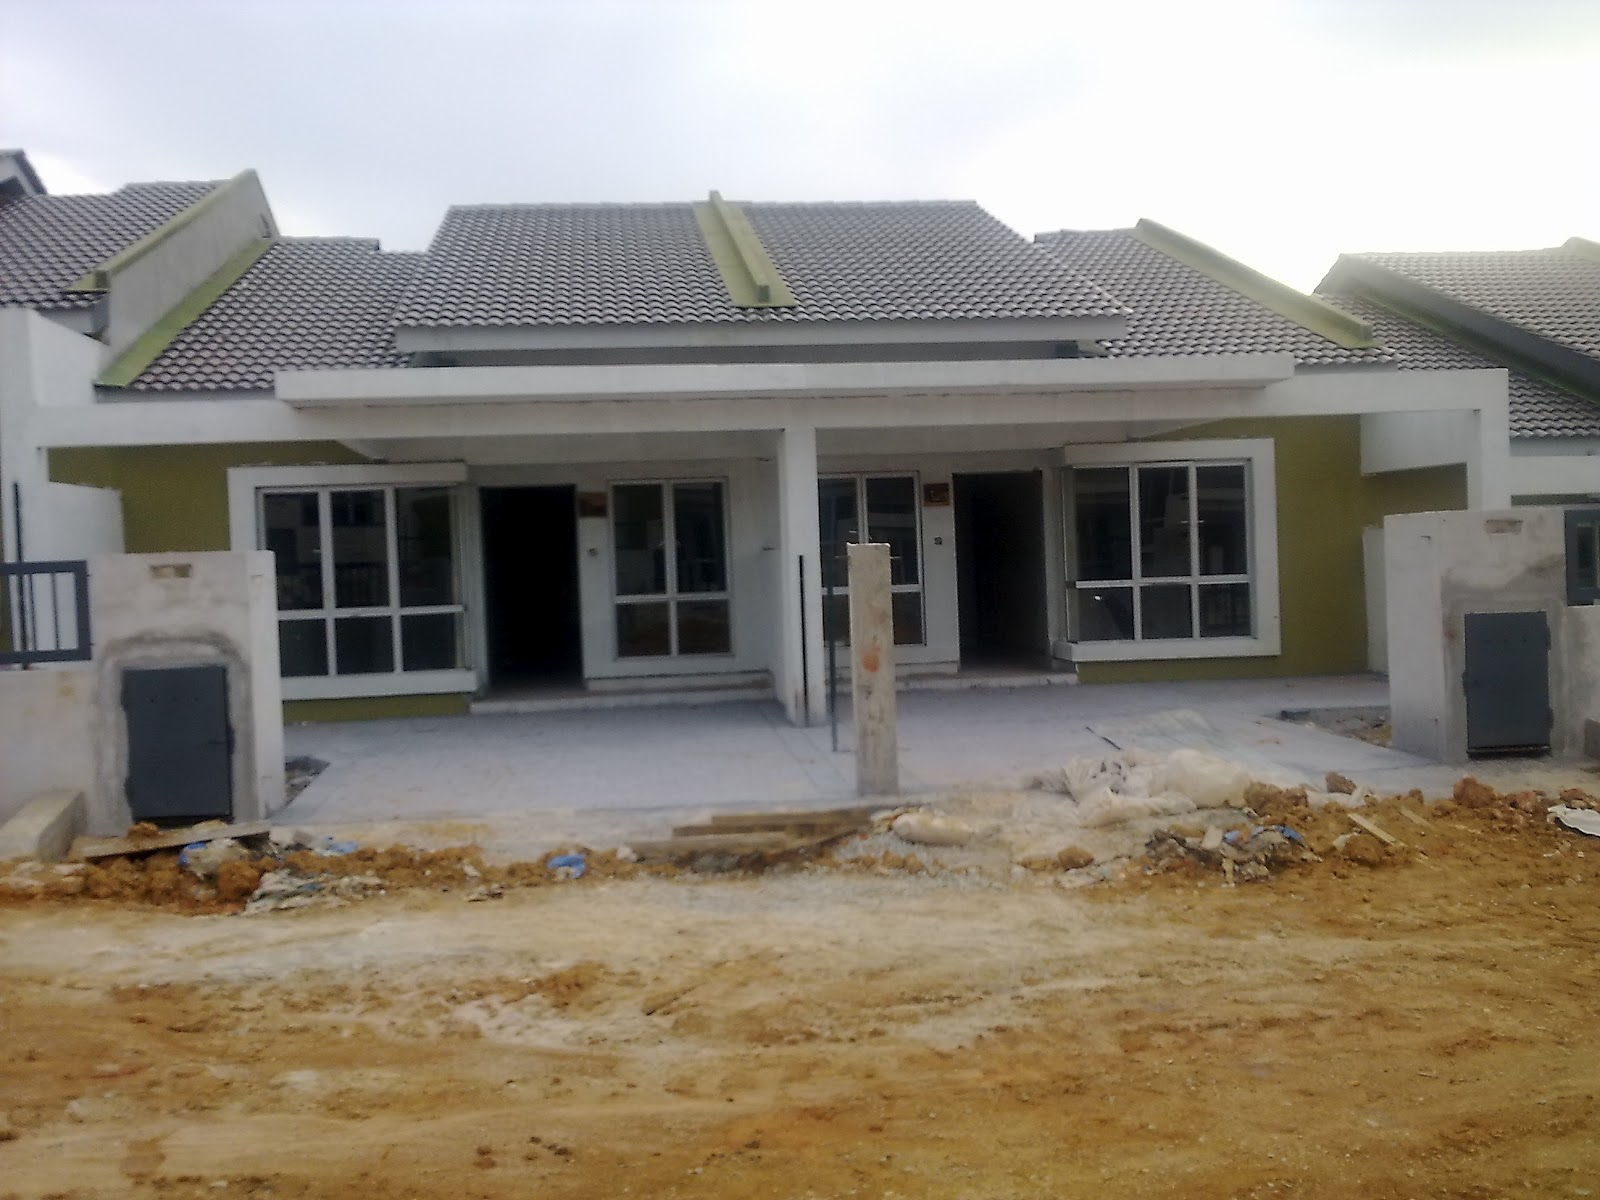 pilihan warna cat rumah submited images pic2fly